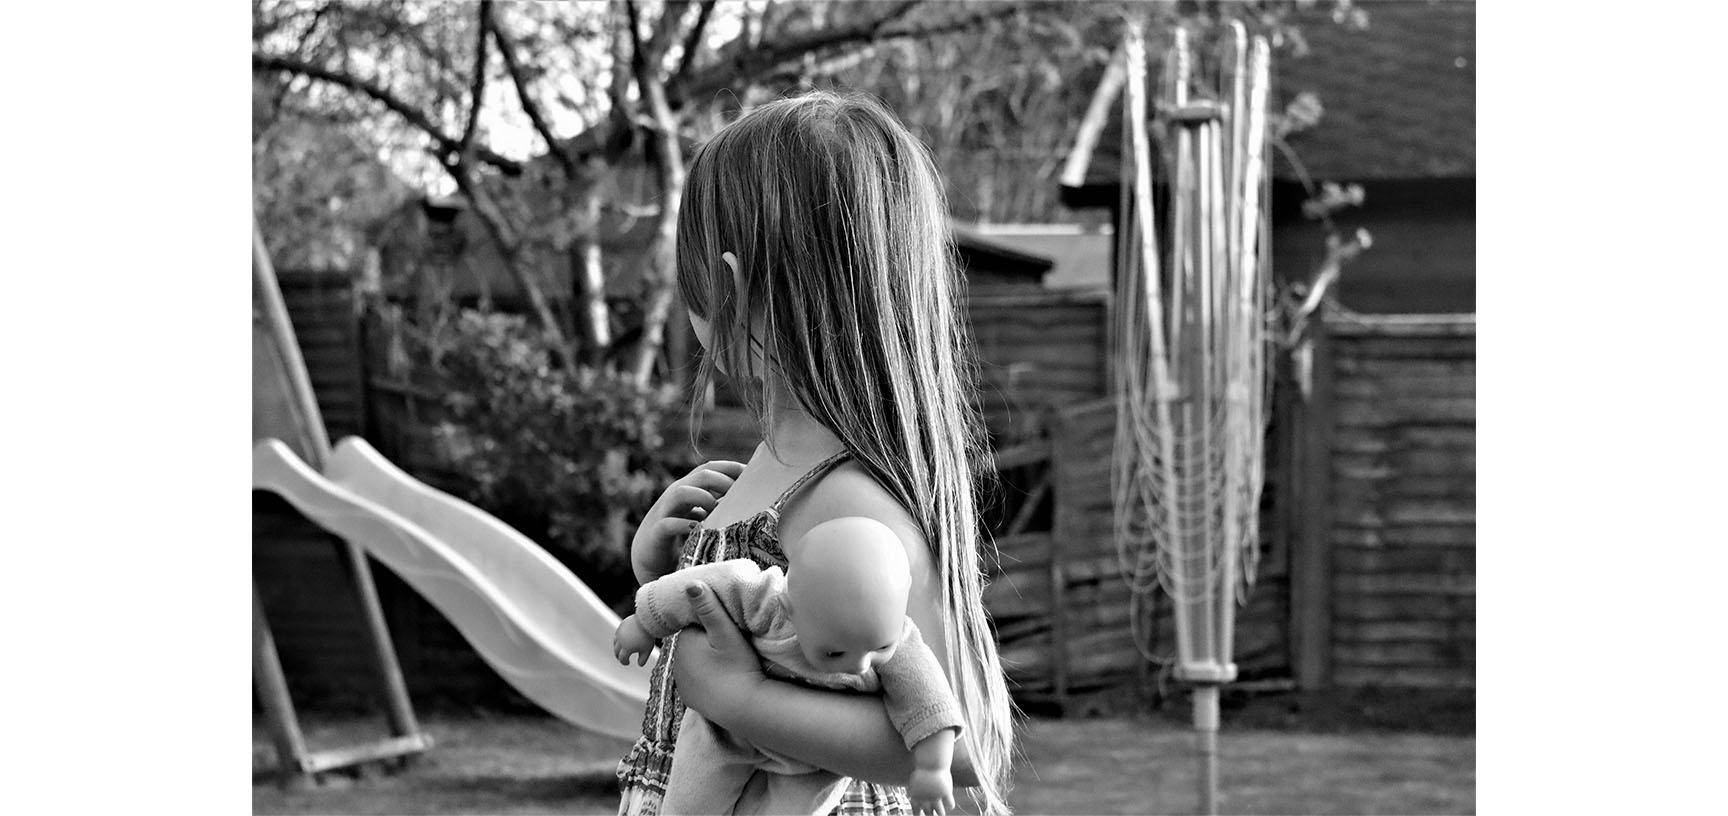 A black and white photograph of a young child. They are looking away from the camera towards a slide in the background. They hold a doll in their left hand.